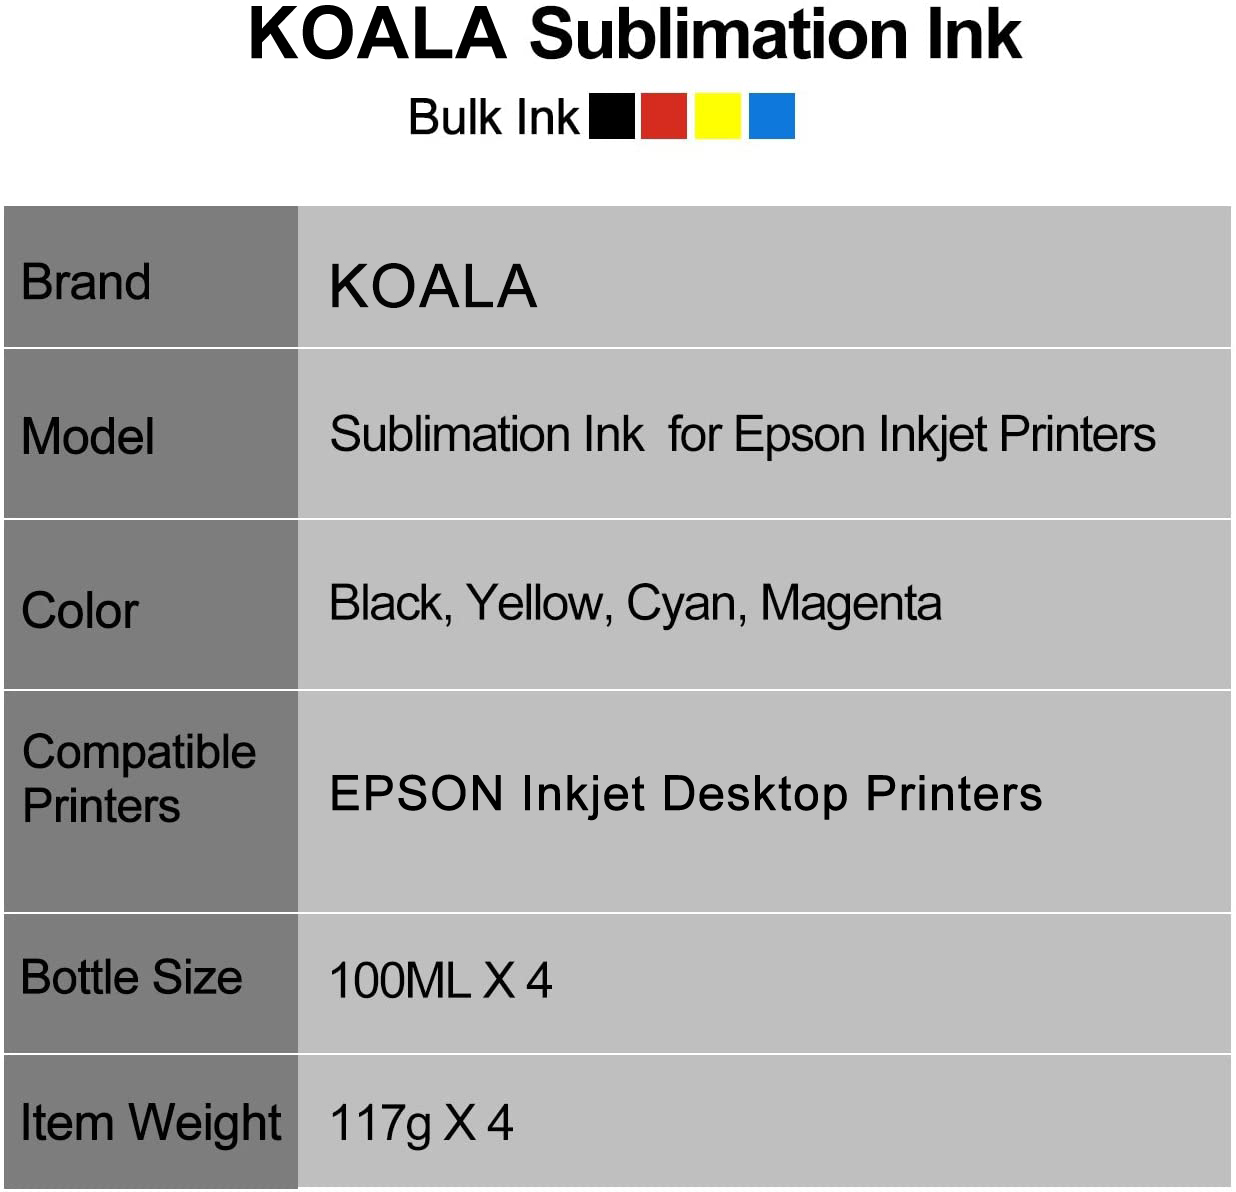 koala sublimation ink for EPSON printer